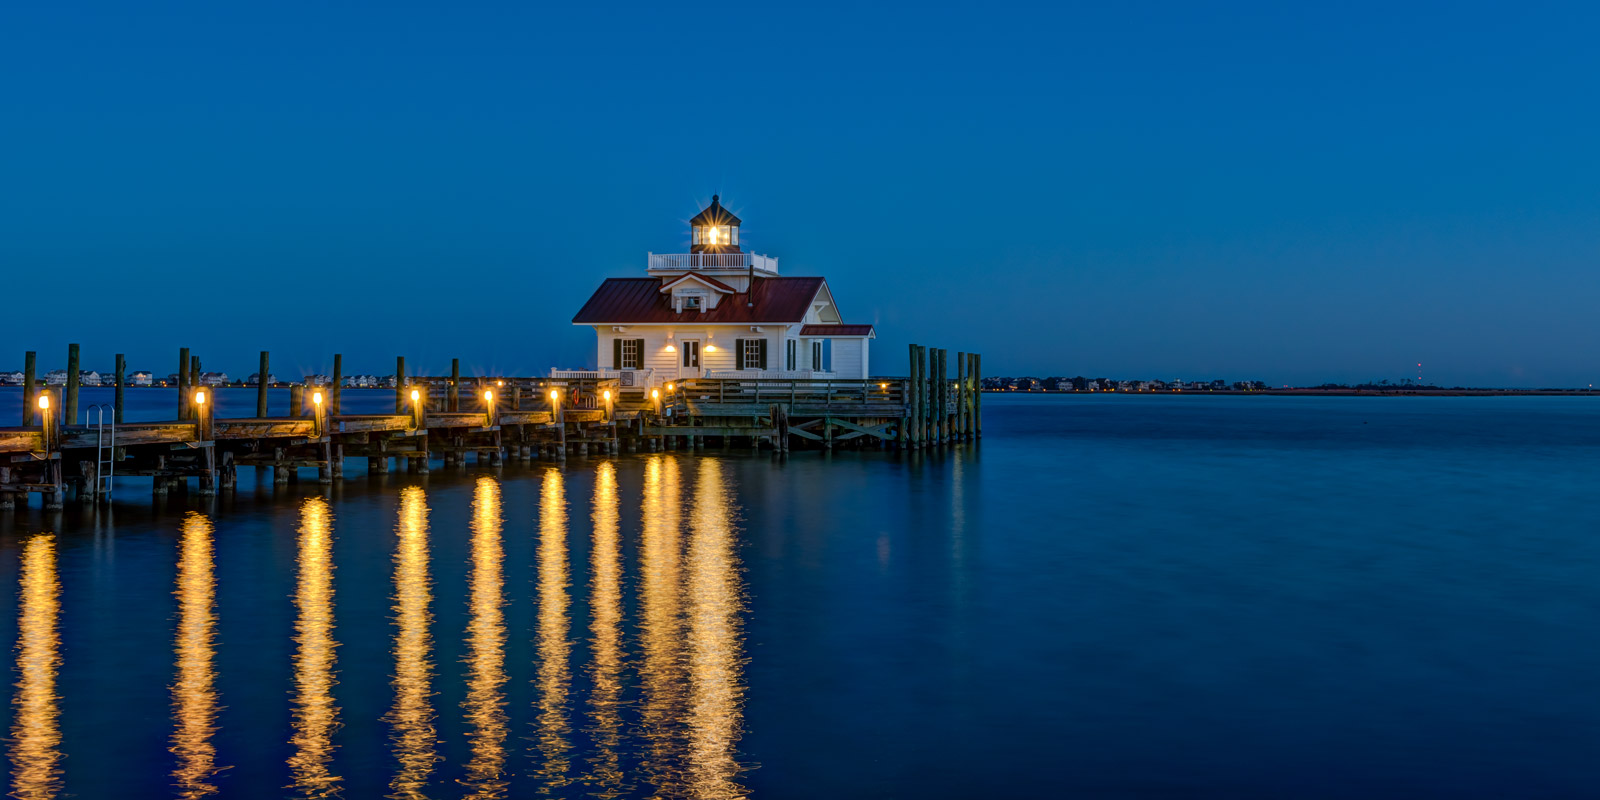 North Carolina, Manteo, lighthouse